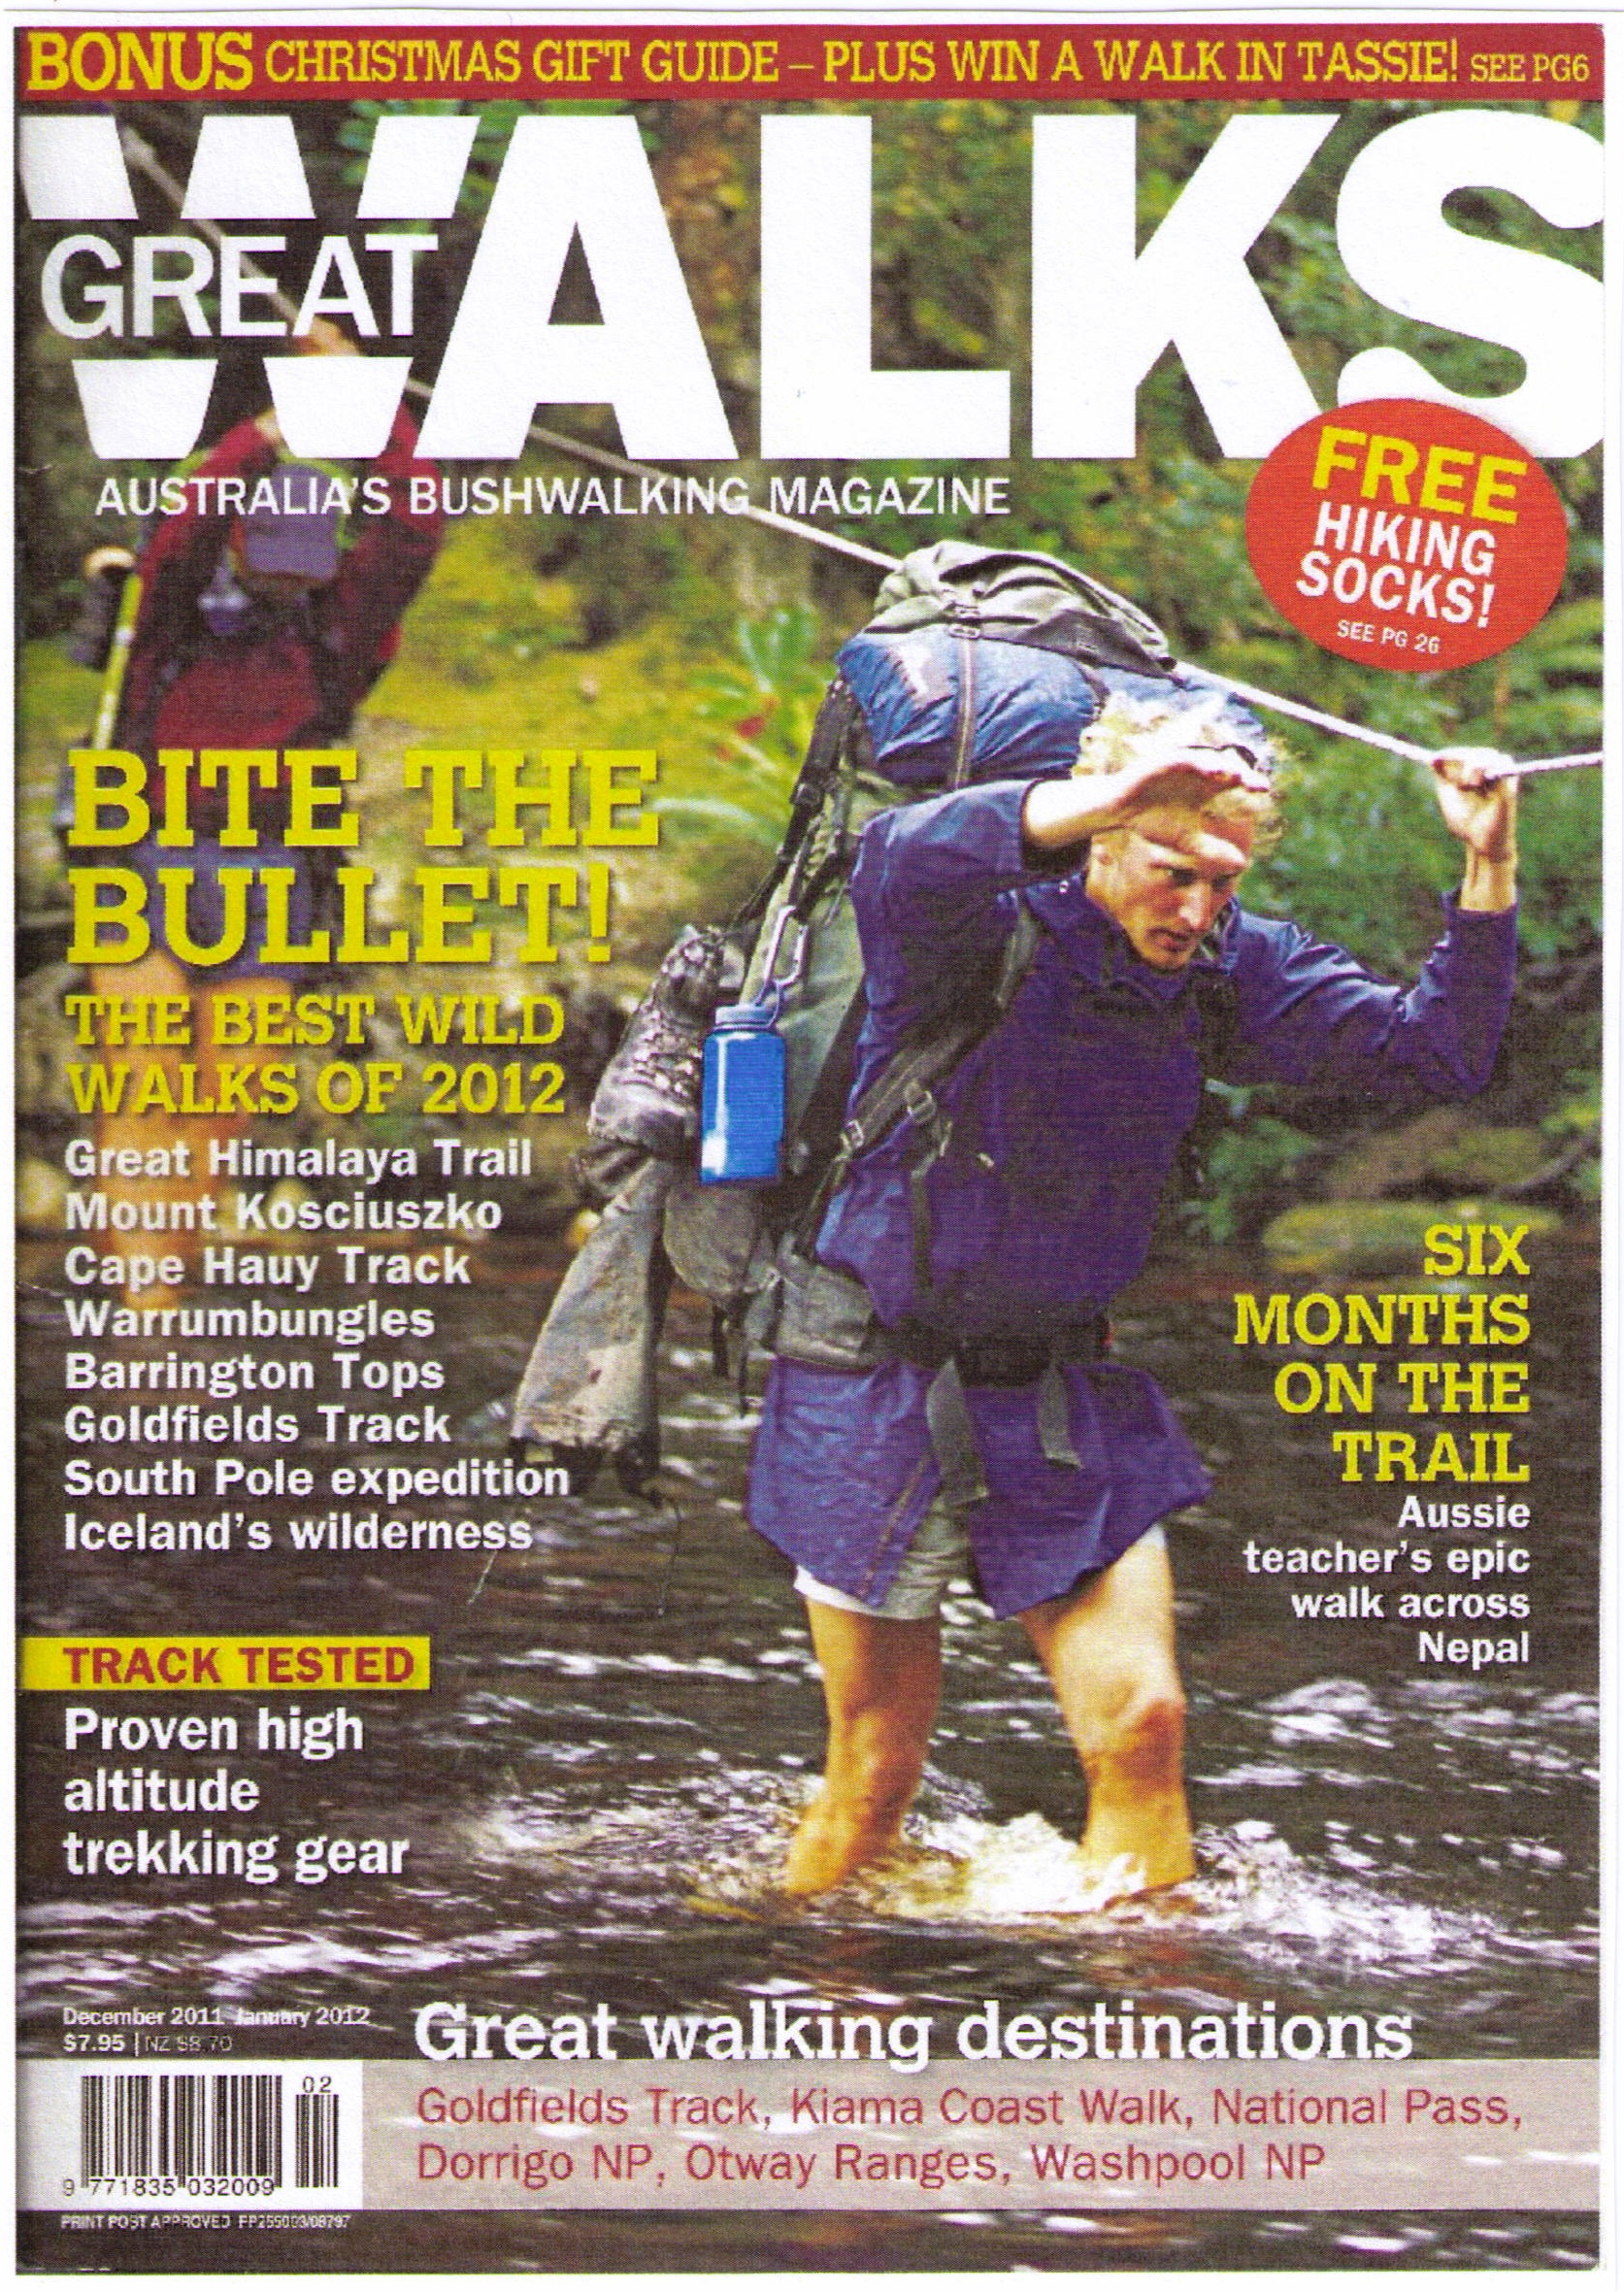 Great Walks Australia, Jan 2012 edition cover